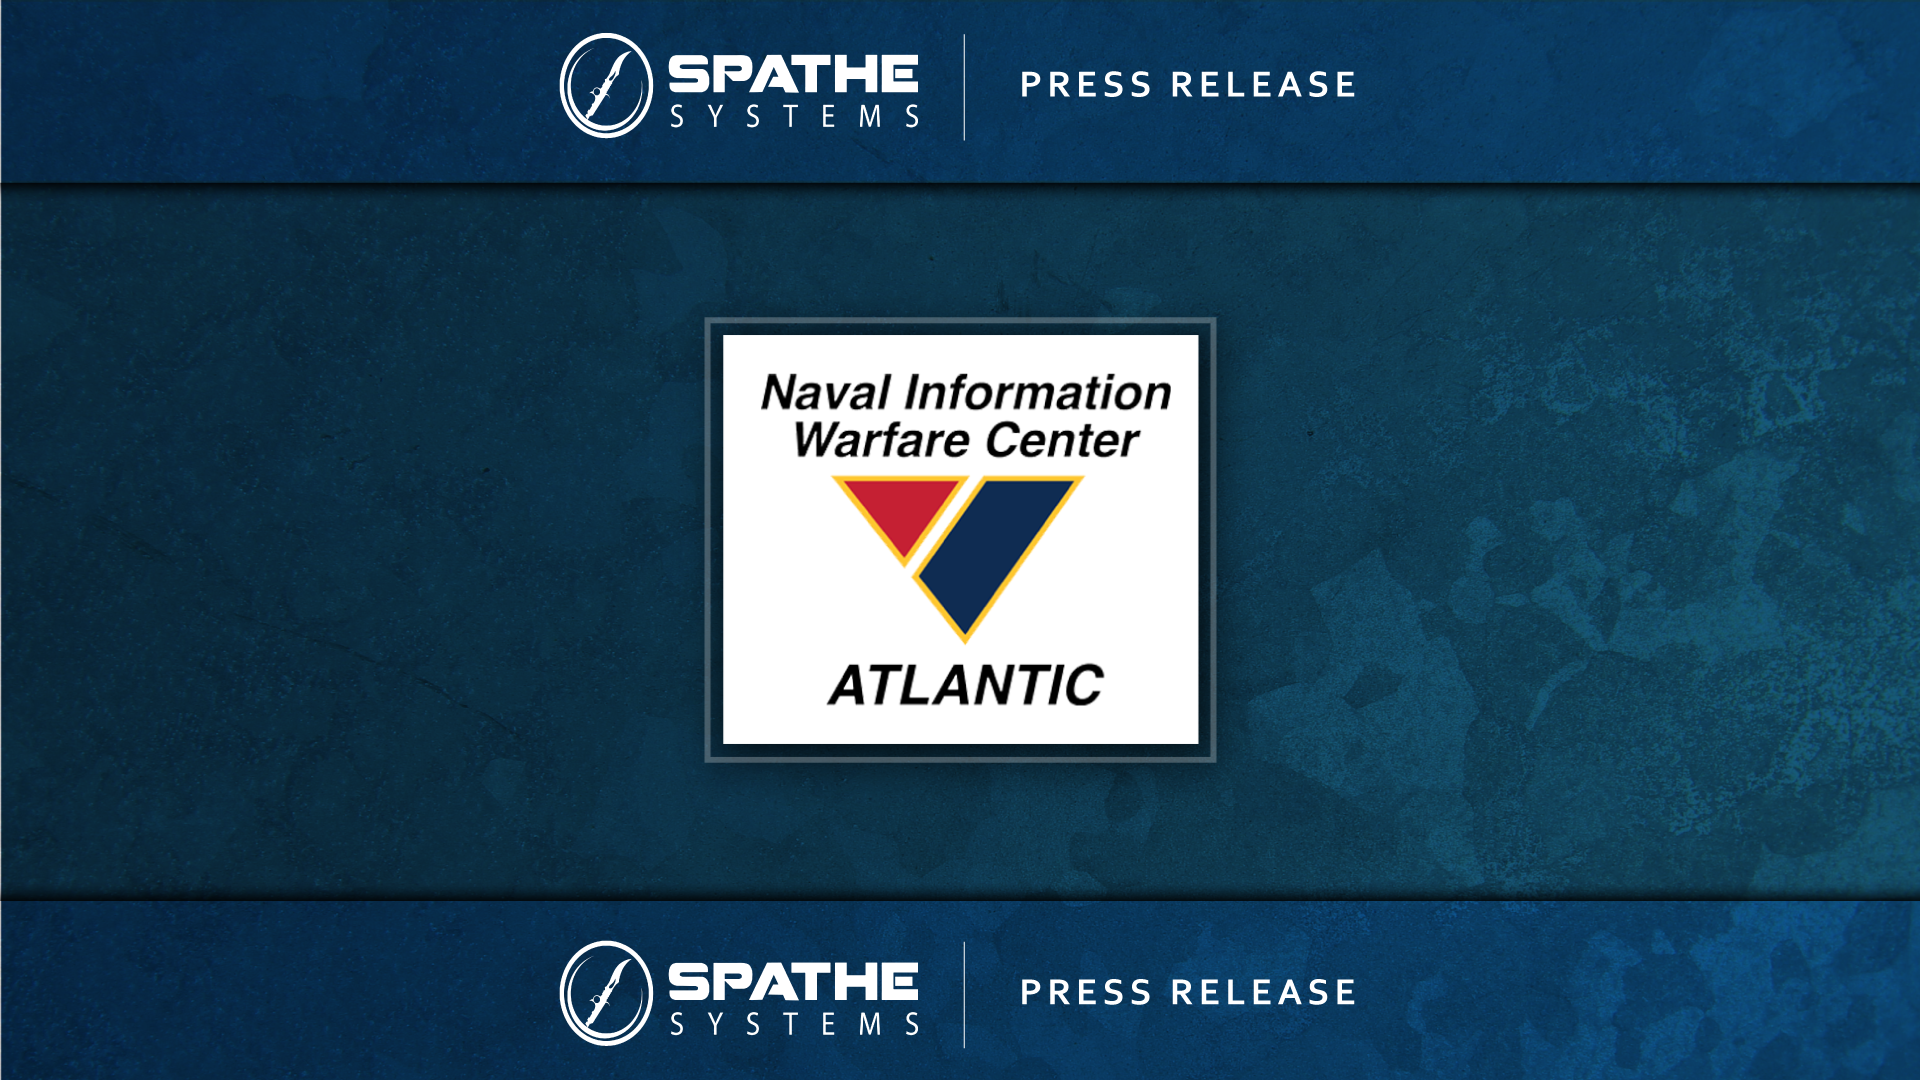 SPATHE SYSTEMS (SPATHE) AWARDED SEAT ON $125.8 MILLION NAVAL INFORMATION CENTER (NIWC) INDEFINITE DELIVERY/INDEFINITE QUANTITY (IDIQ)